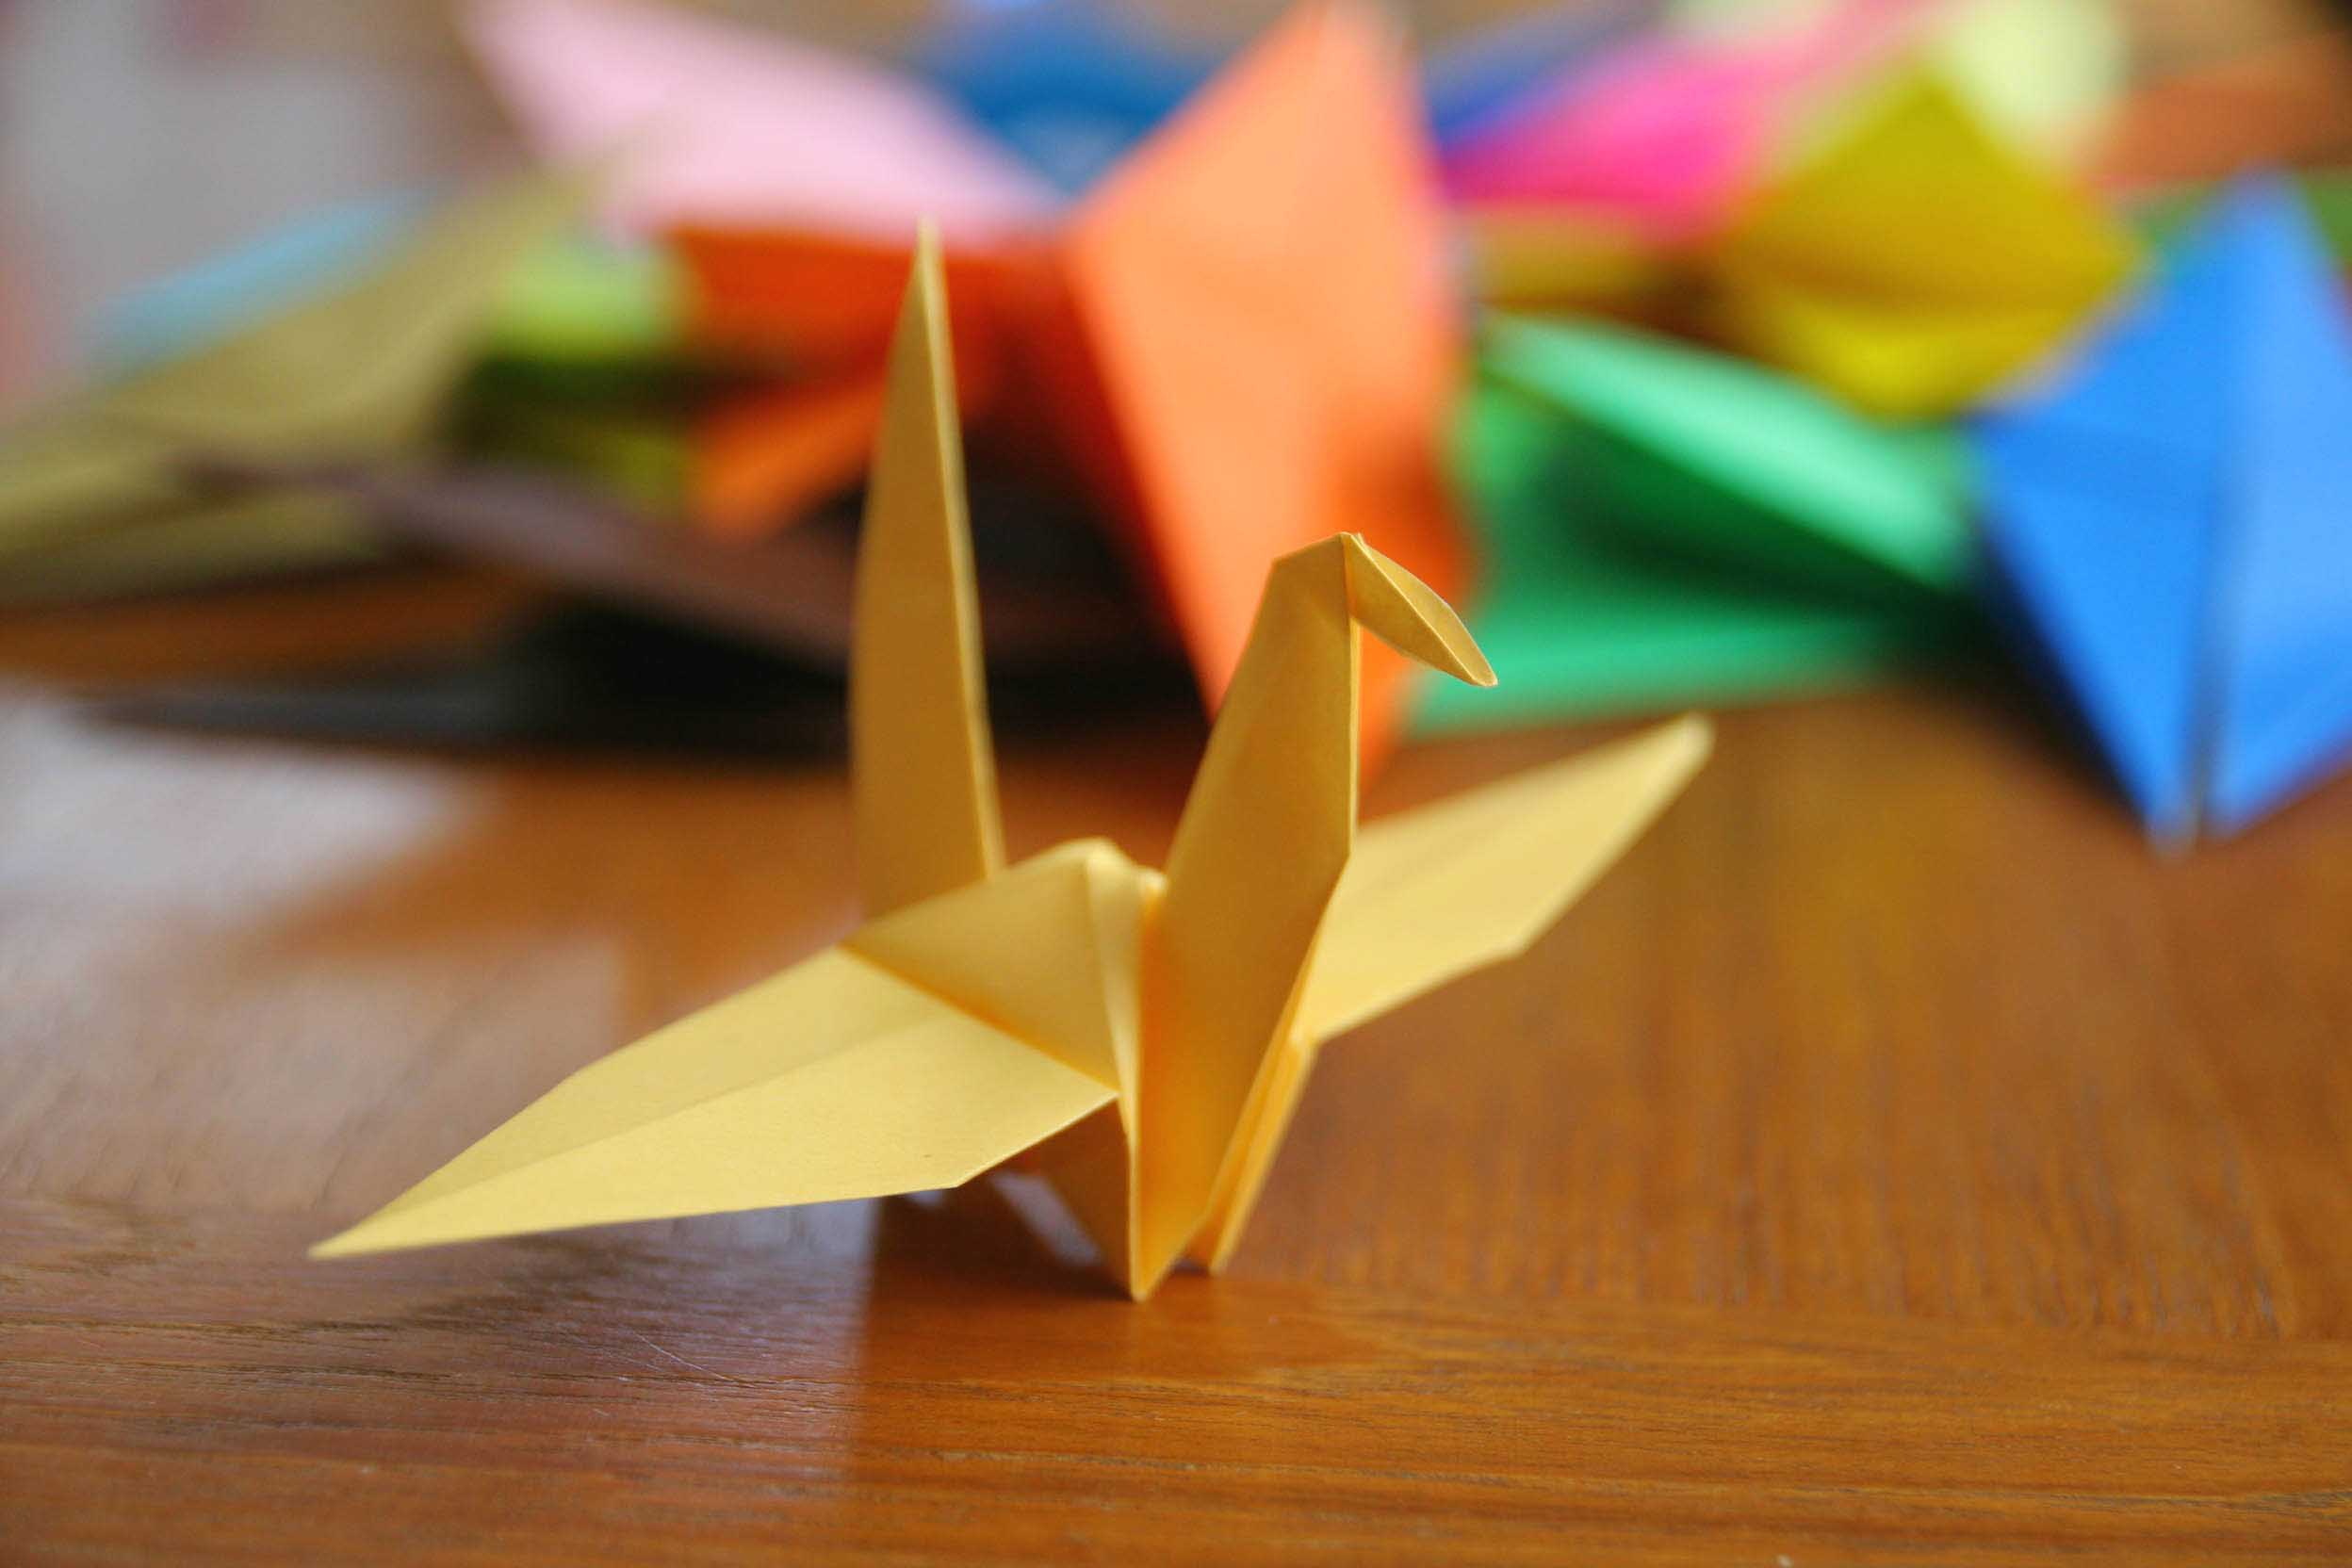 paper crane meaning Tattoos of the paper crane have been growing popular, not only for the symbolism, but because it is a really cool concept of being able to take a simple piece of paper and turning it into something beautiful just by making a couple folds.